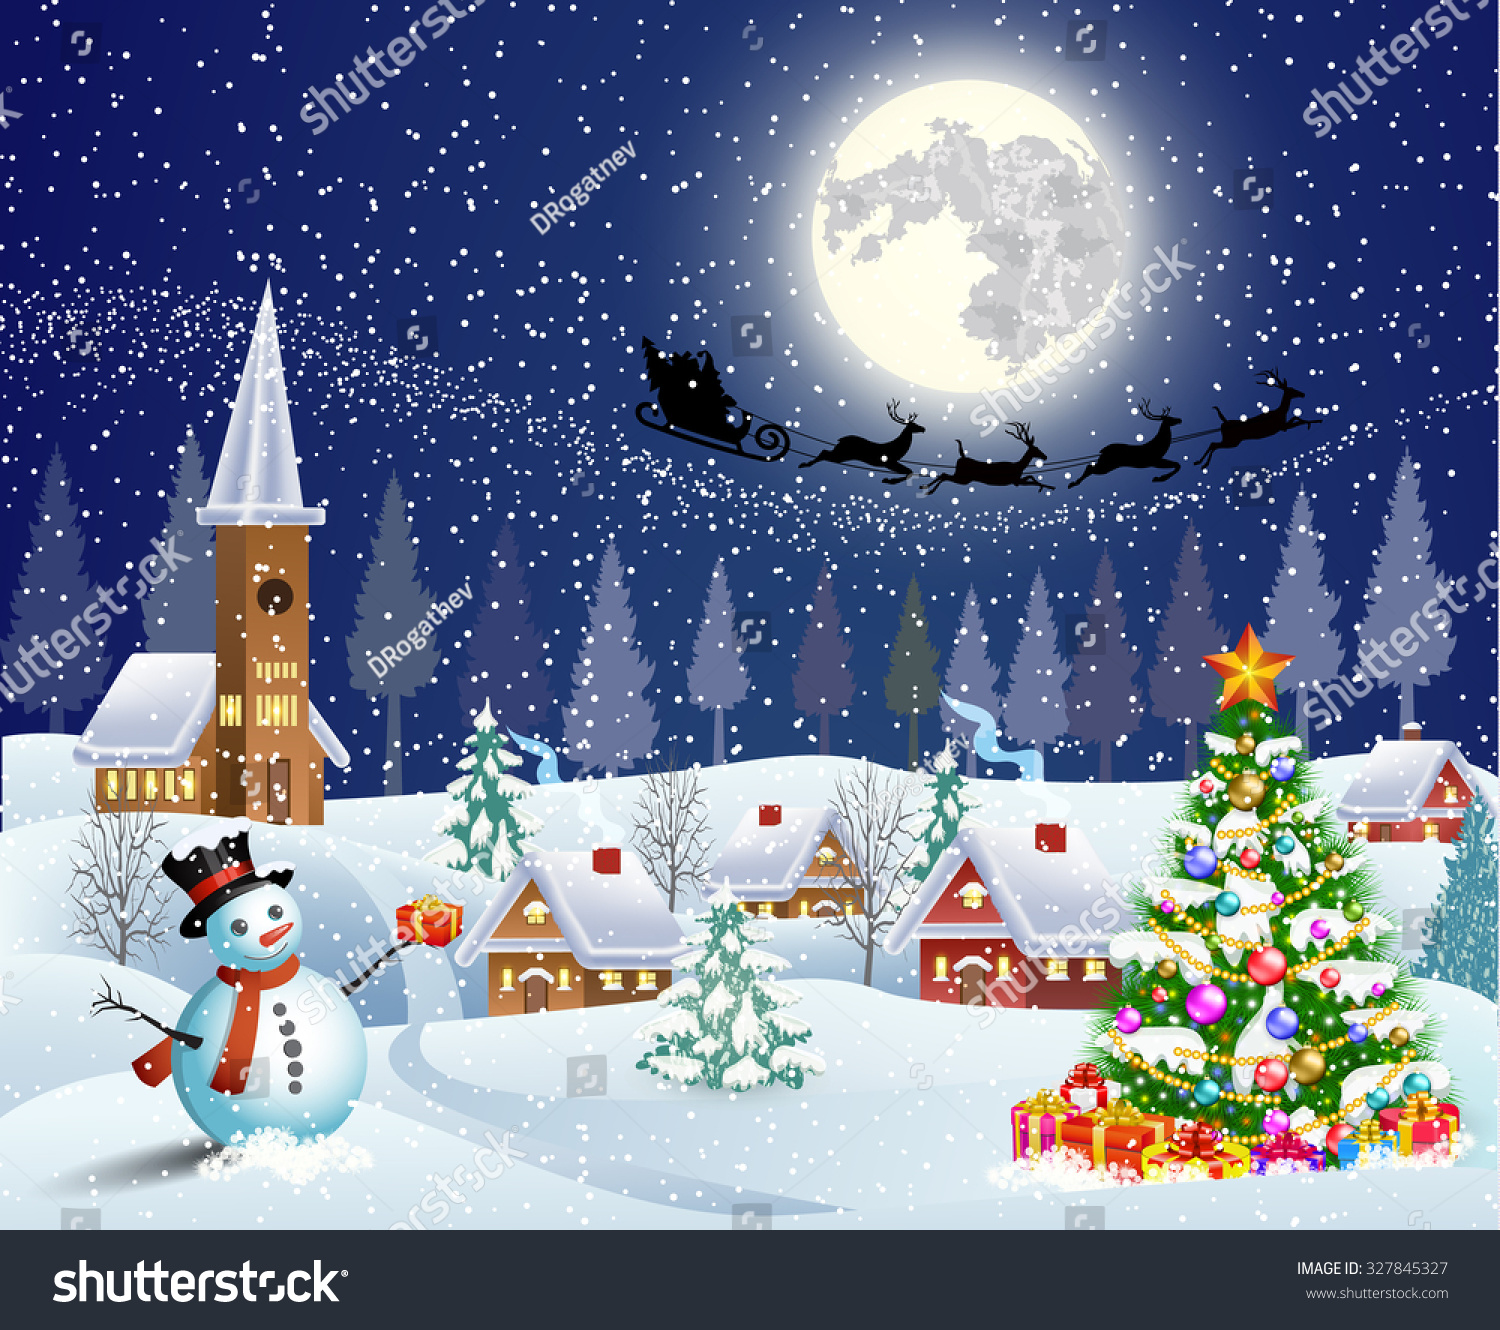 Christmas landscape christmas tree snowman gifbox stock for Christmas landscape images